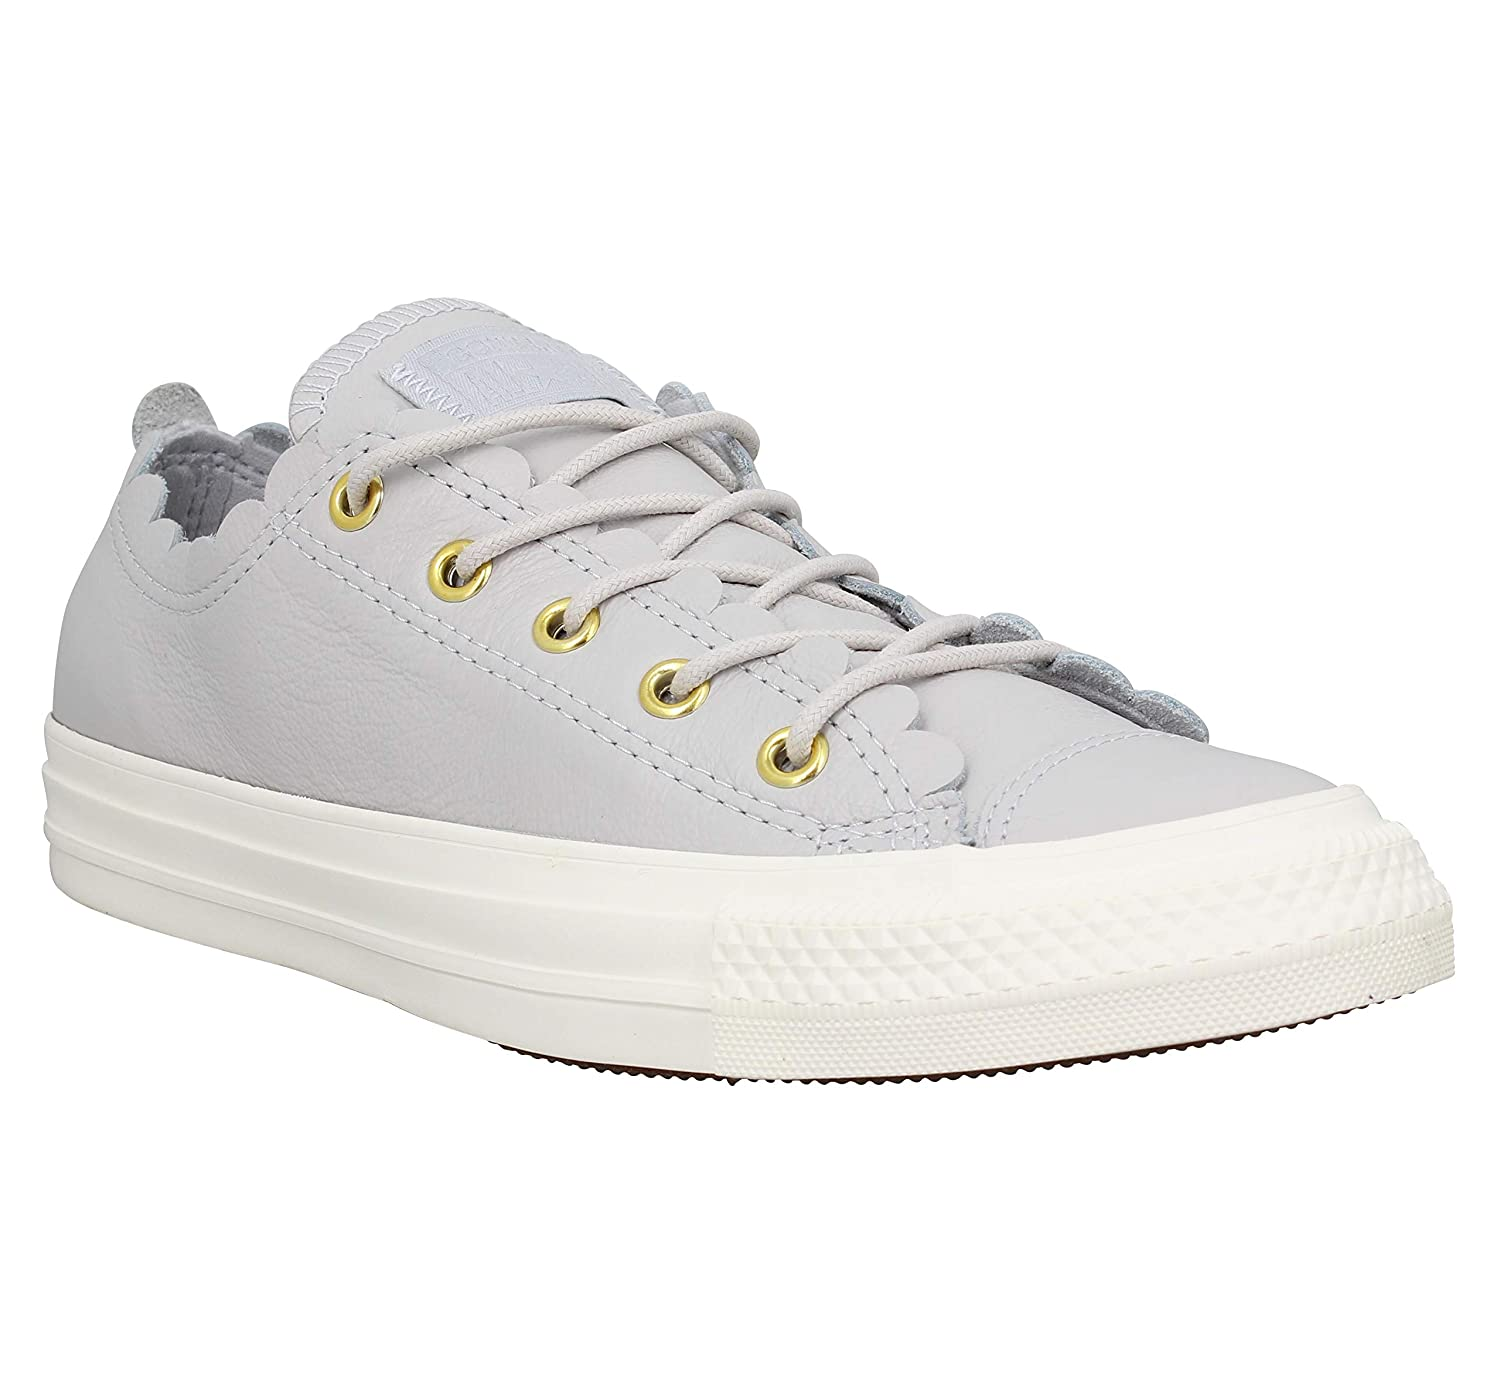 a6aa26c95fd6 Amazon.com  Converse All Star Ox Womens Sneakers Grey  Shoes